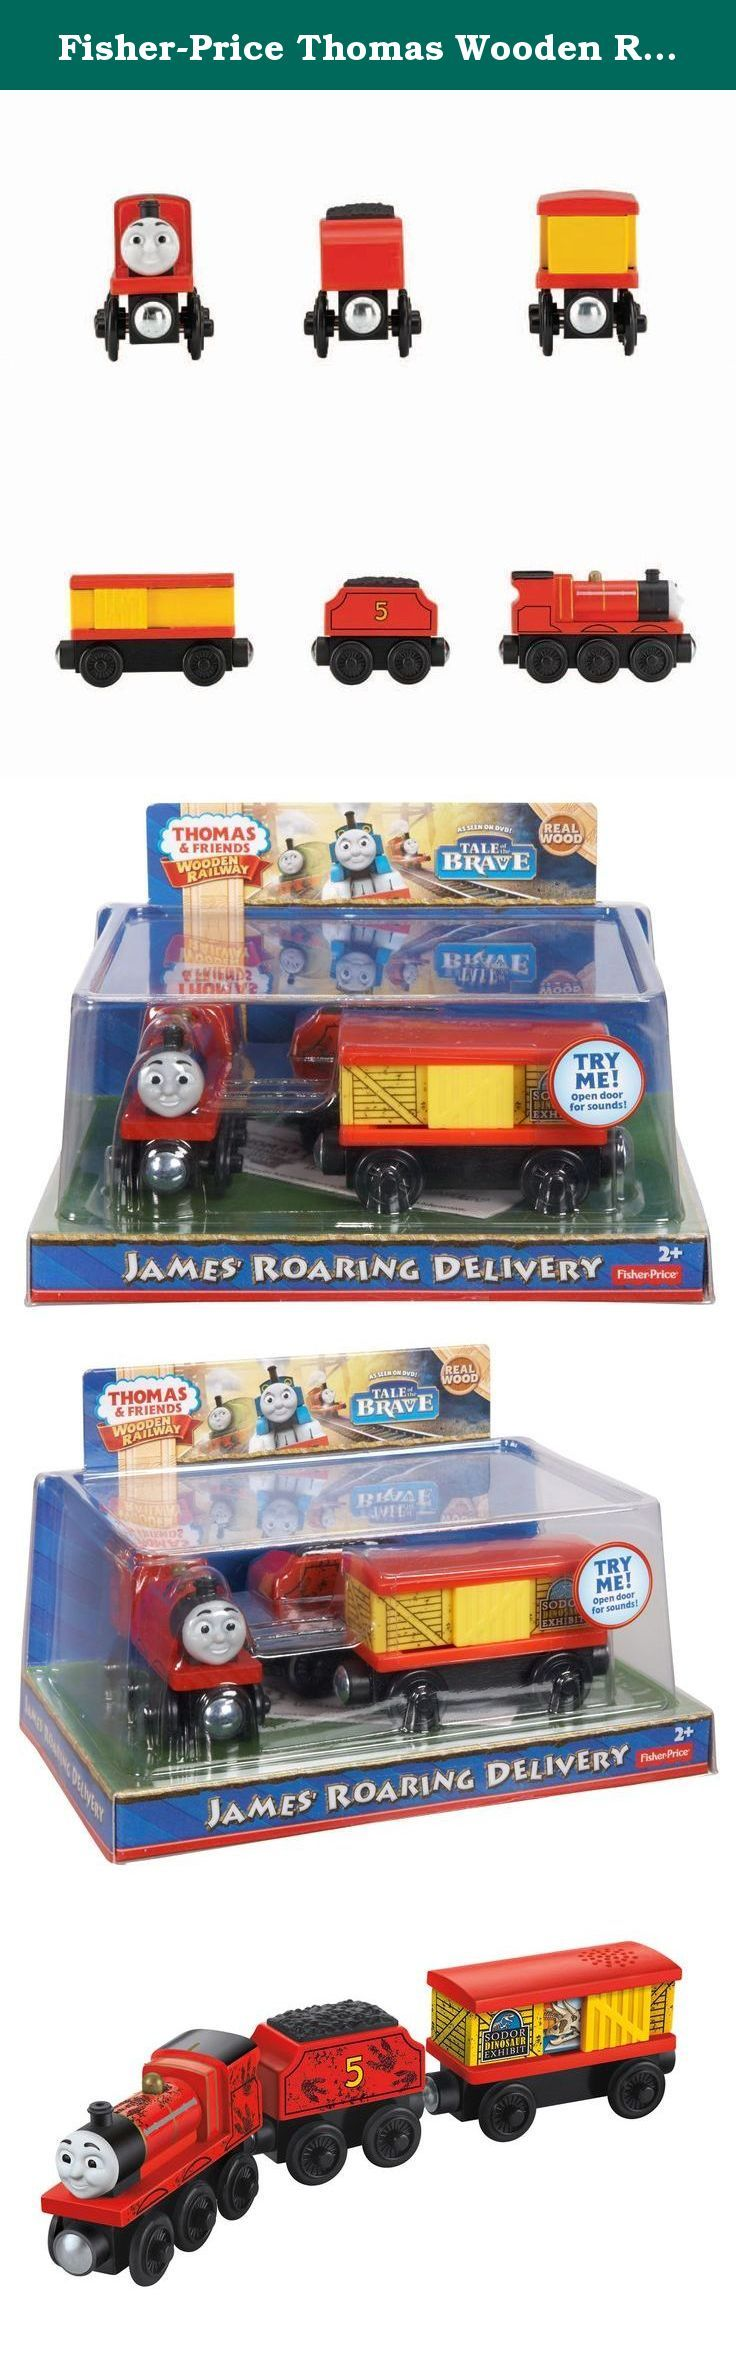 "Fisher-Price Thomas Wooden Railway - James and The Dino (Tale of The Brave) (3-Pack). Inspired by the DVD movie, Tale of the Brave James is pulling a cargo car filled with crates for the dinosaur exhibit! Hear the roar of a dinosaur as you open and close the cargo door! Can connect to other Wooden Railway engines and vehicles with magnet connectors. Perfect for Thomas & Friends Wooden Railway train sets (sold separately and subject to availability)! Requires 1 ""AG13"" battery (not included)."